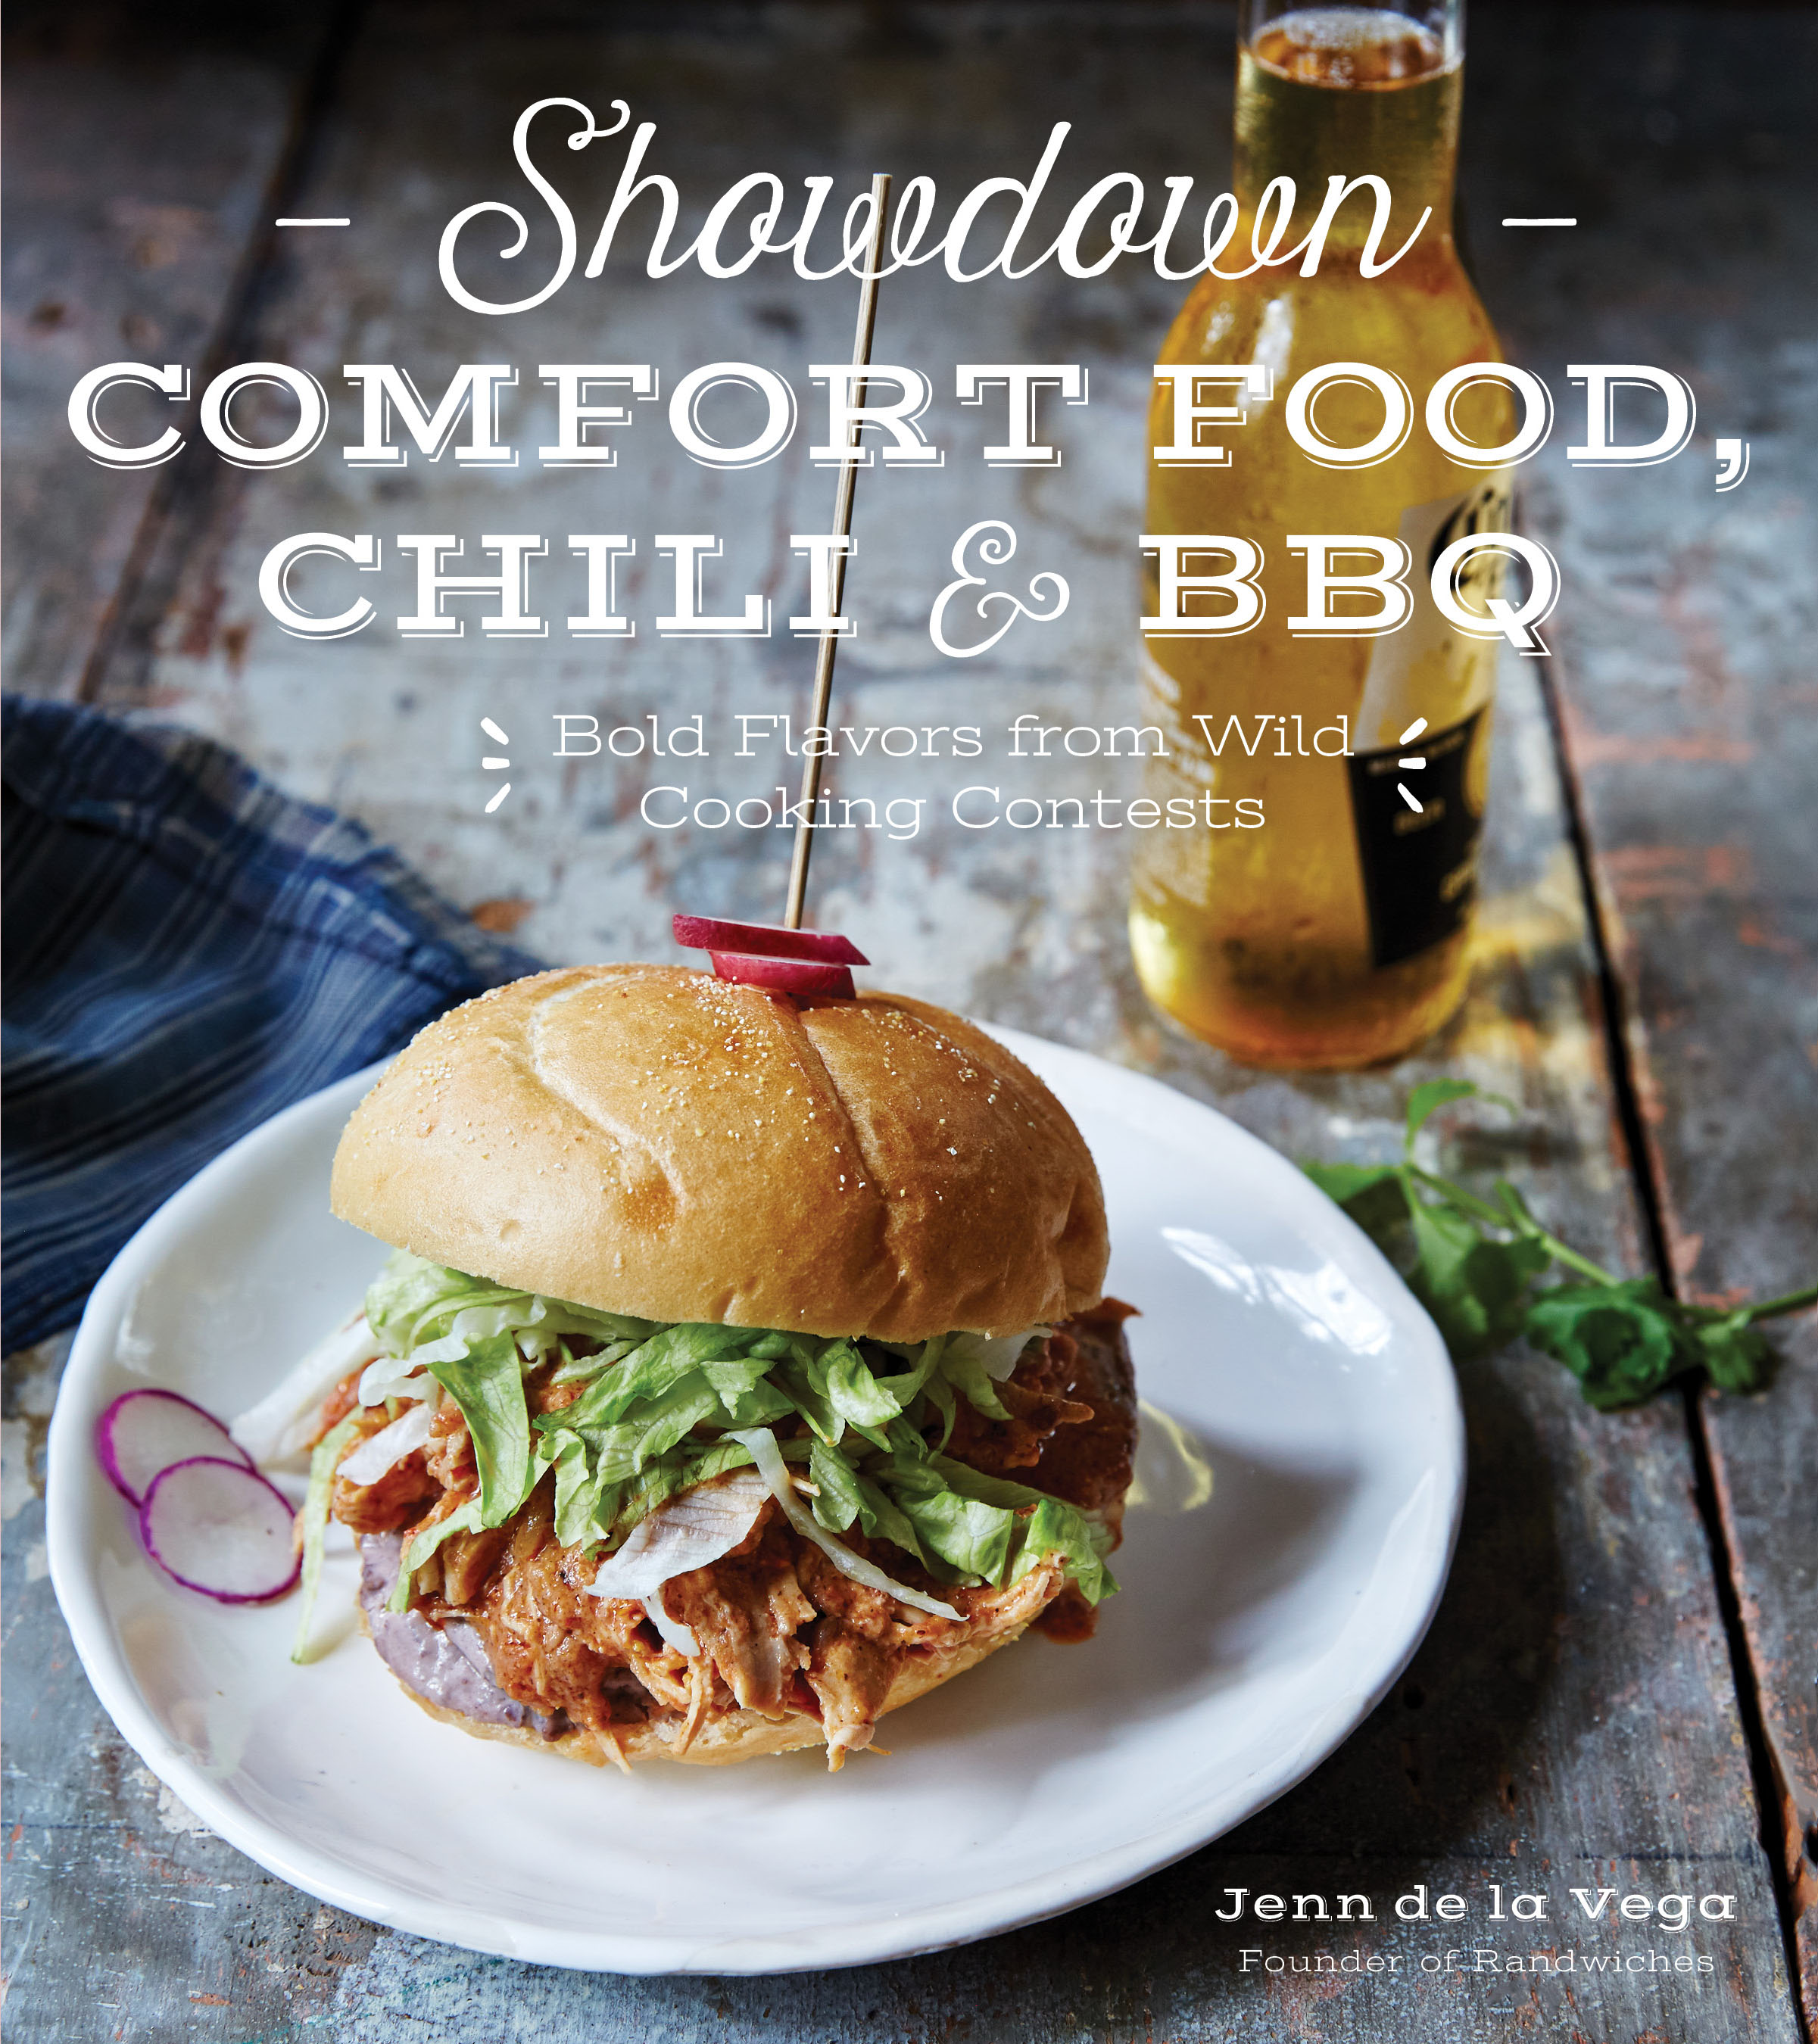 Showdown Cookbook - Recipe development and styling